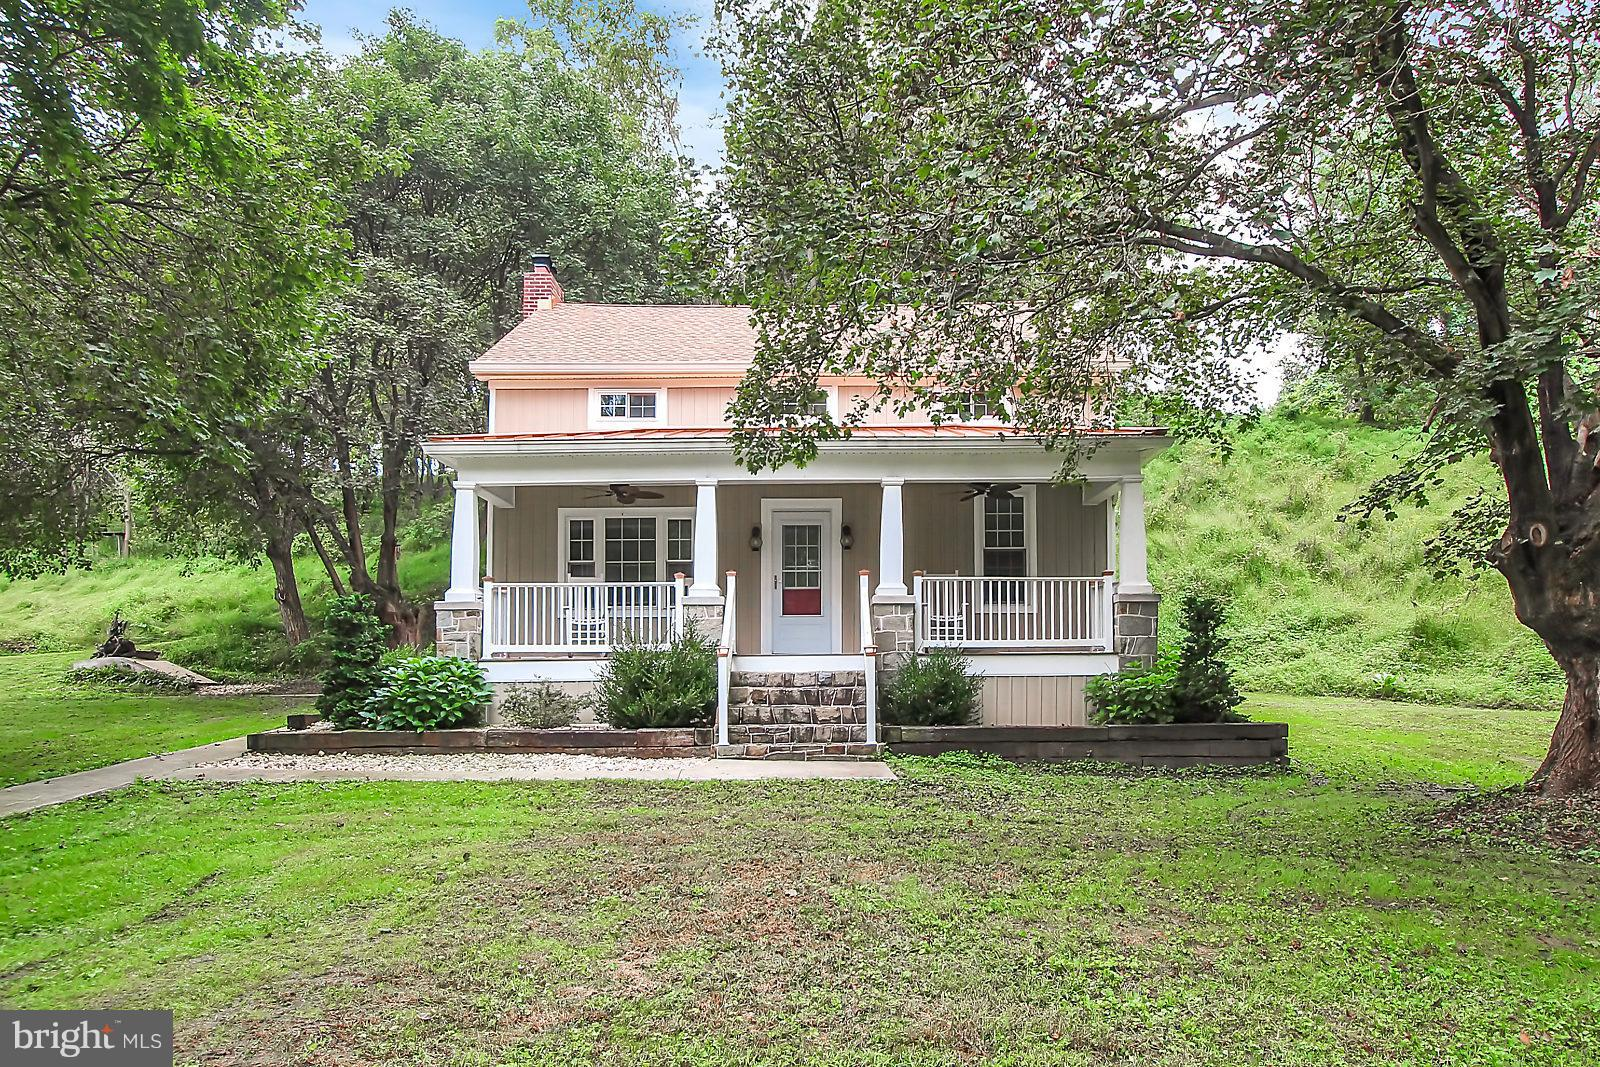 204 ABELS ROAD, WRIGHTSVILLE, PA 17368